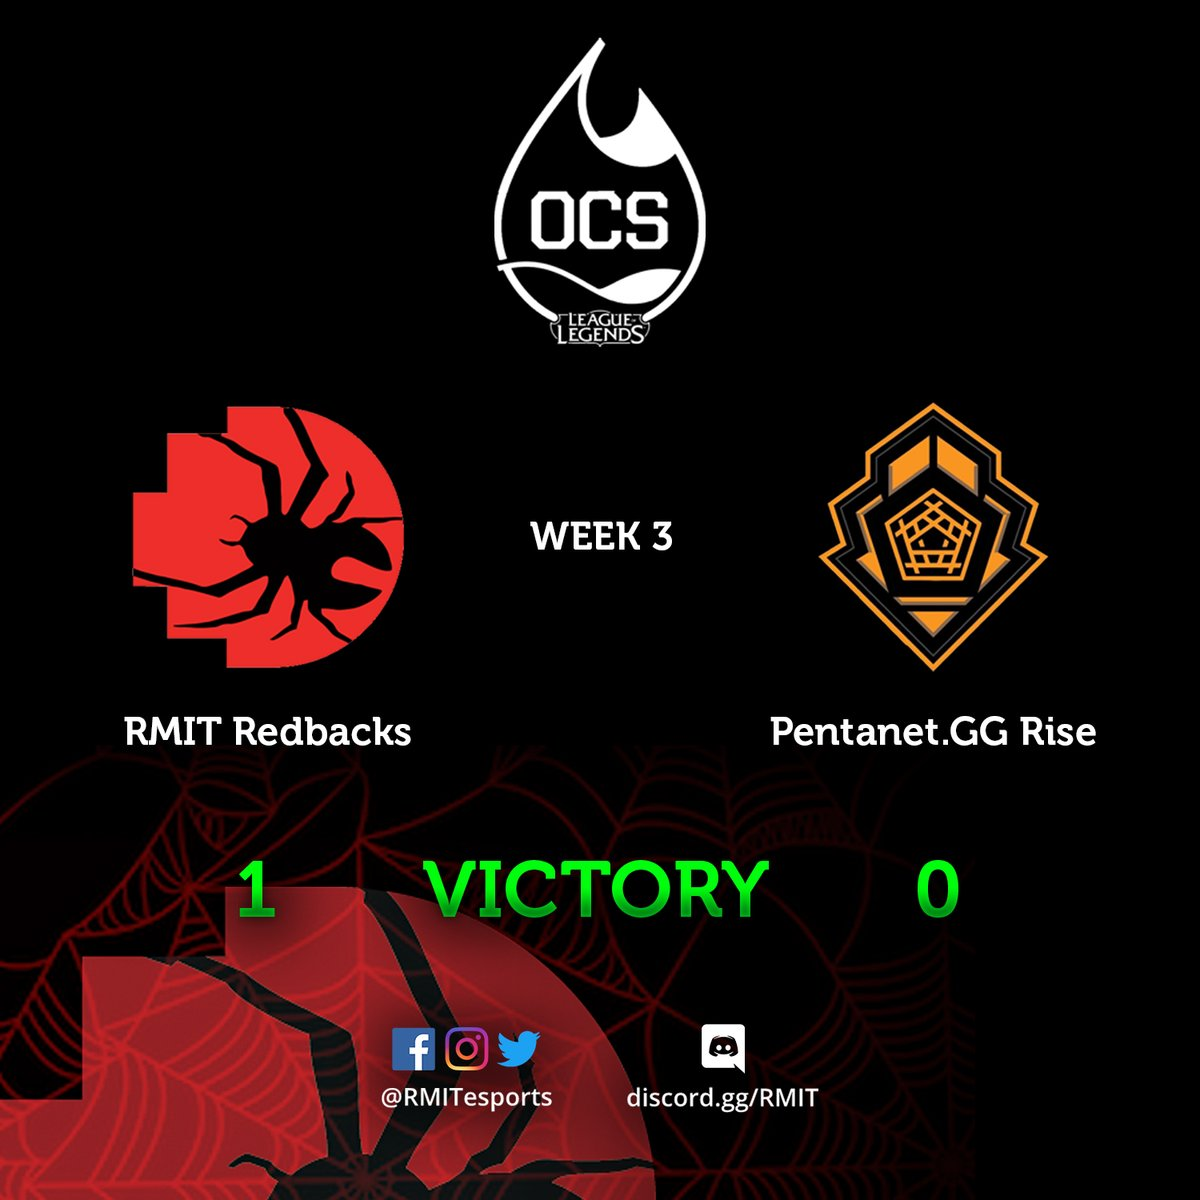 [#LOL] The RMIT Redbacks capture their first win tonight against @PentanetGG Rise!  #RMITWIN #RMITRedbacks #RMITesports #RMITSport #RMITStudentLife